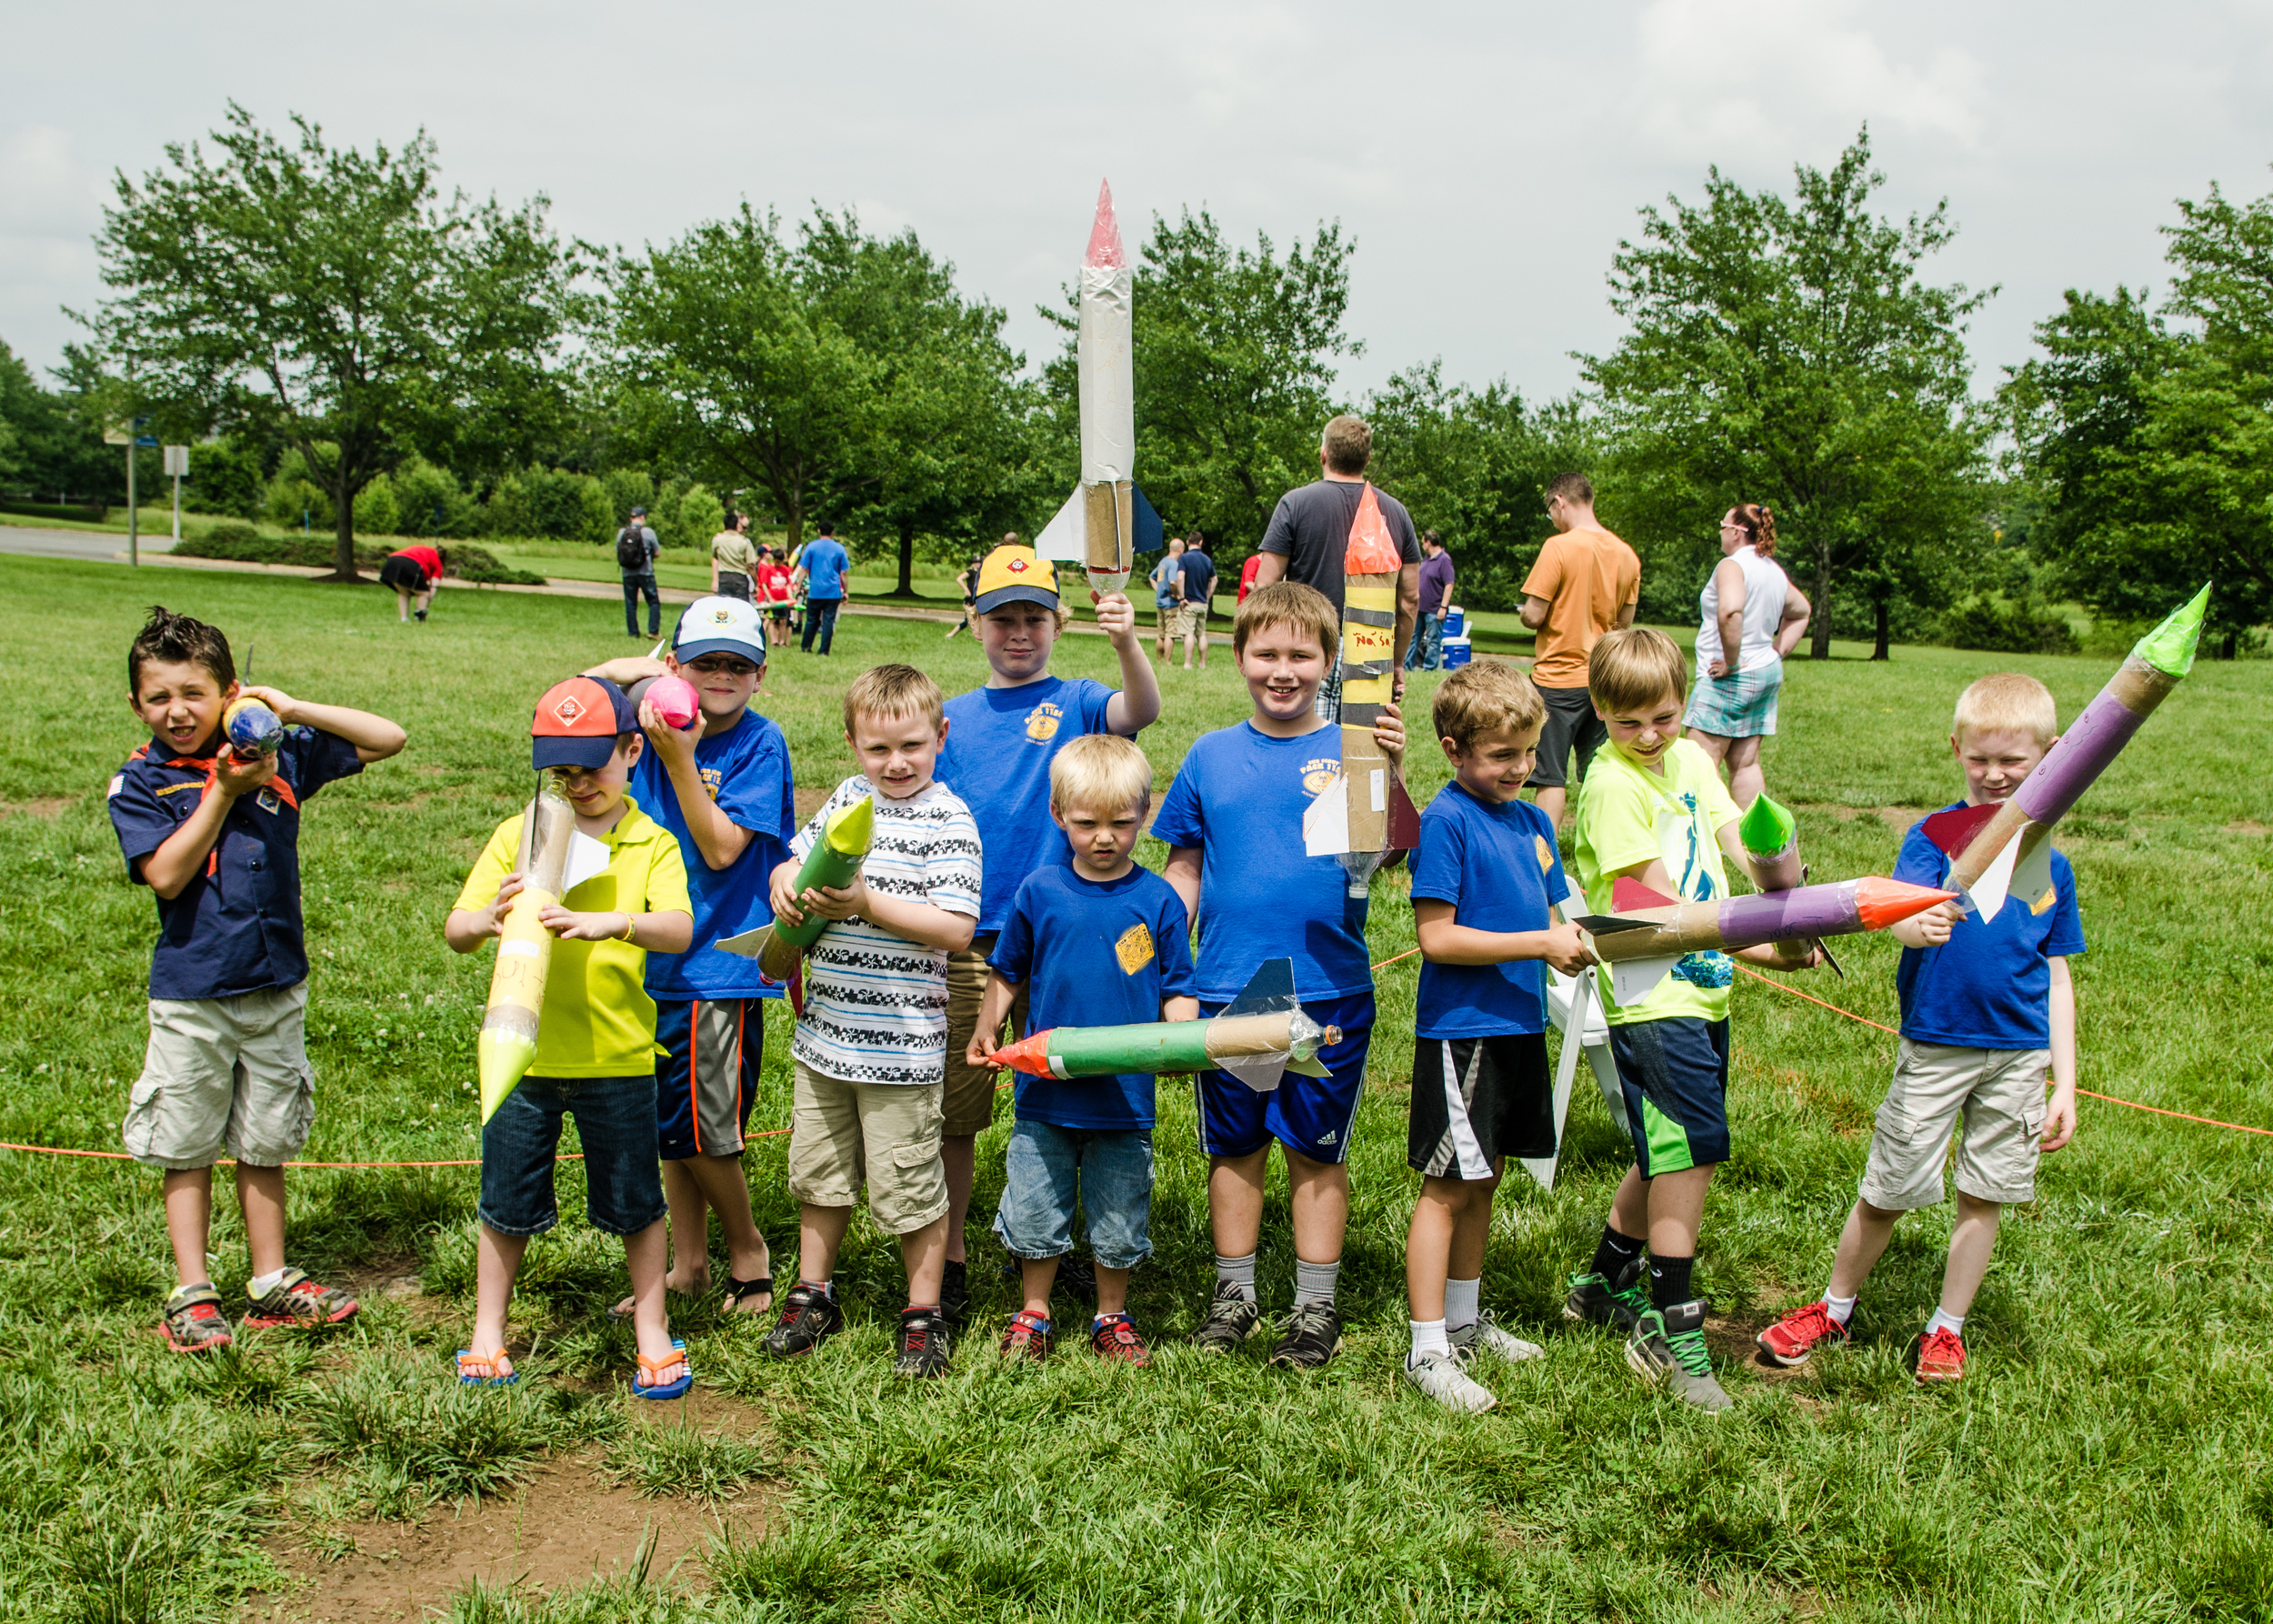 waterrocket_derby-1603_20160604.jpg